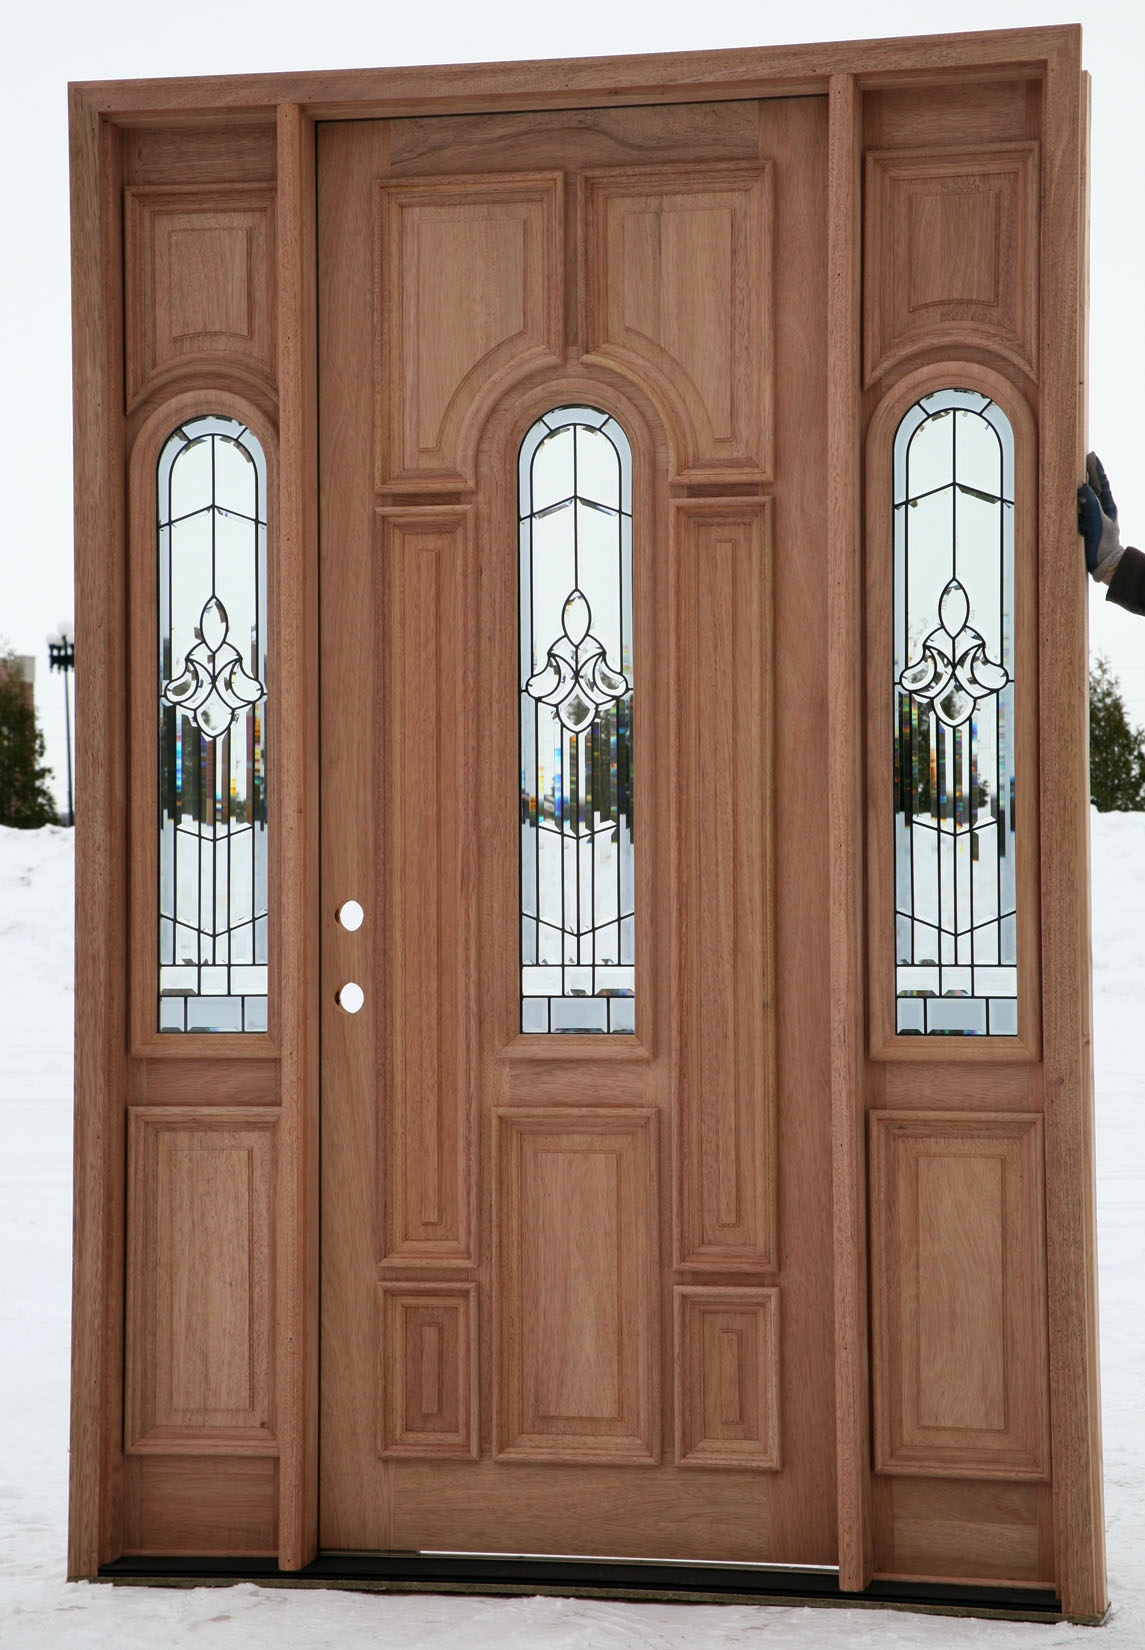 1650 #714A36 Exterior Doors With Sidelites Wood.jpg image Exterior Doors With Sidelites 40931145